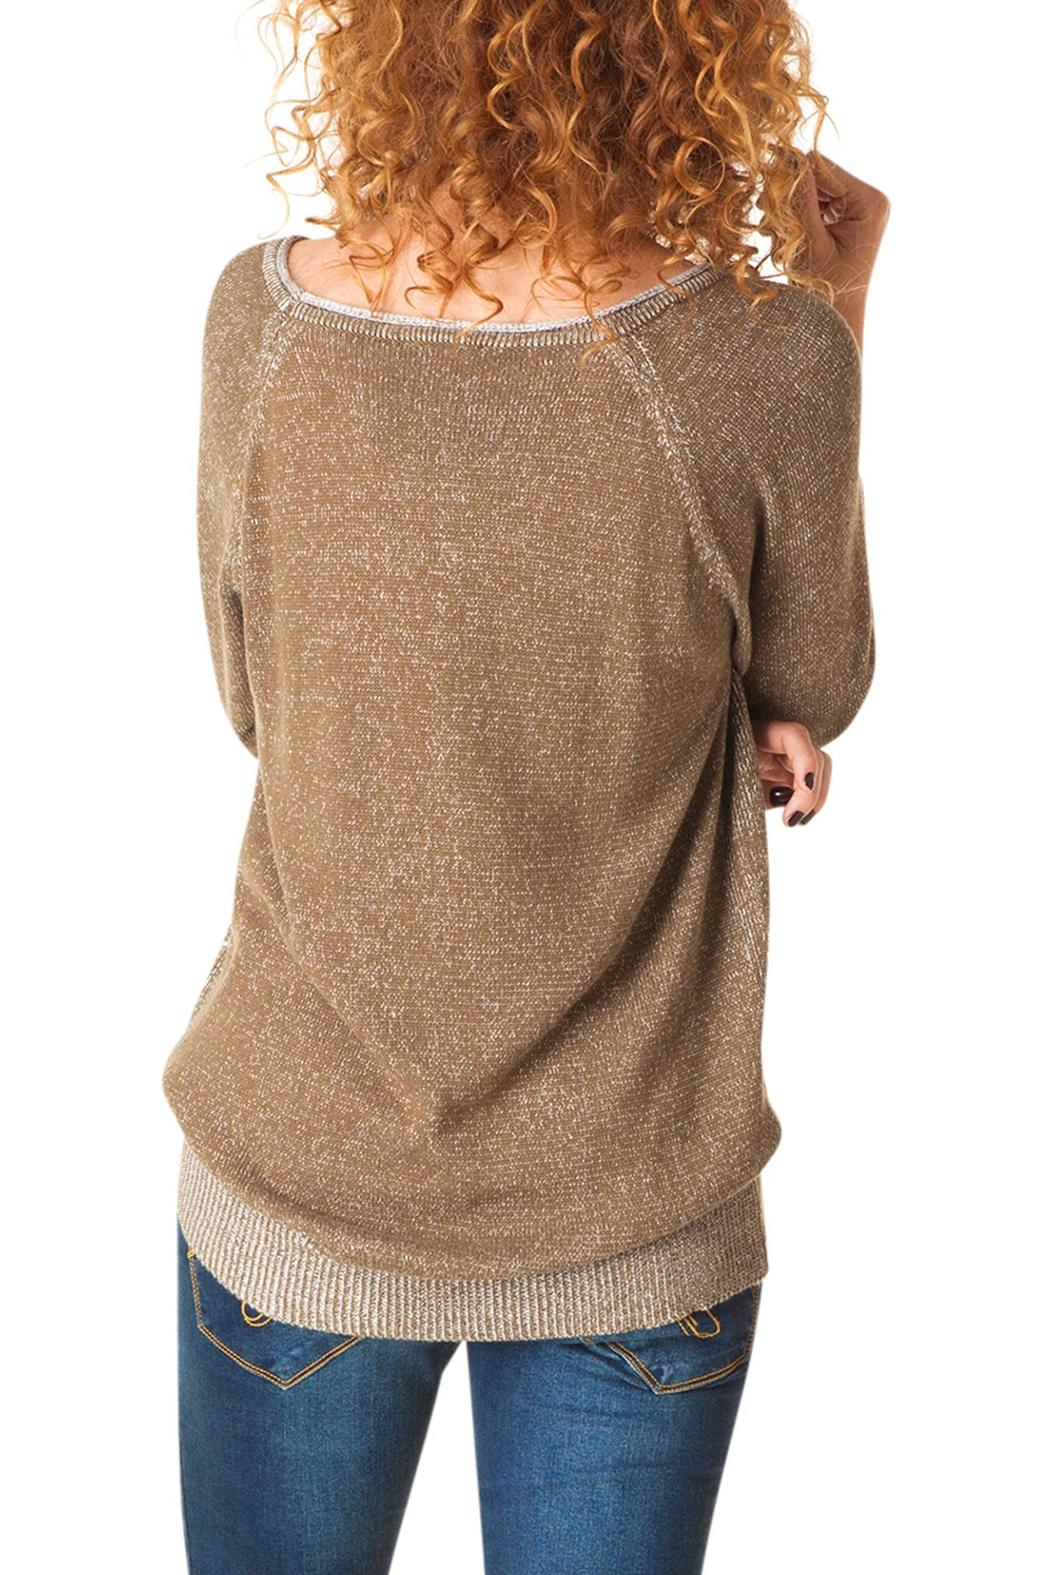 Yest Linear Knit Sweater - Front Full Image